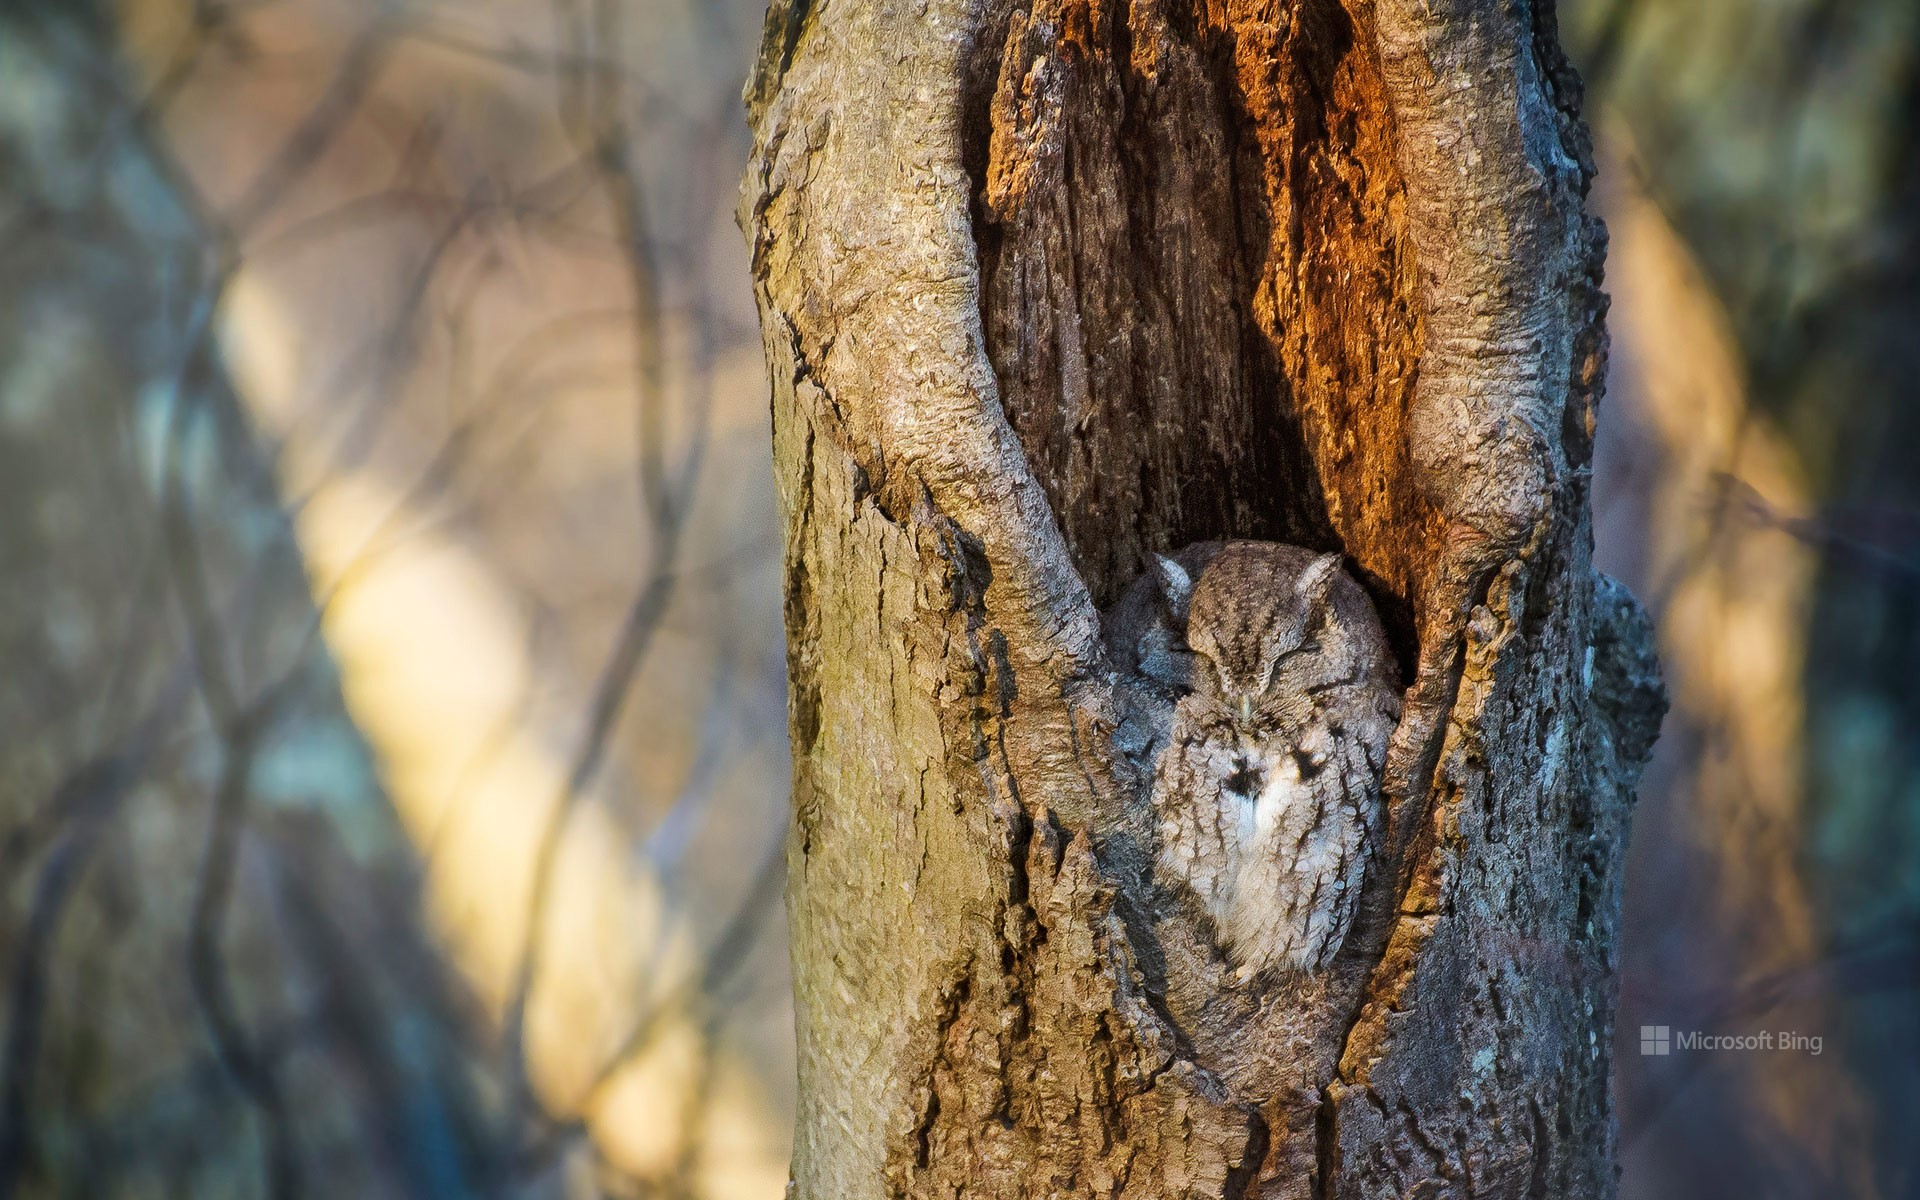 Screech owl resting in a tree cavity, Massapequa Preserve, Long Island, New York, USA